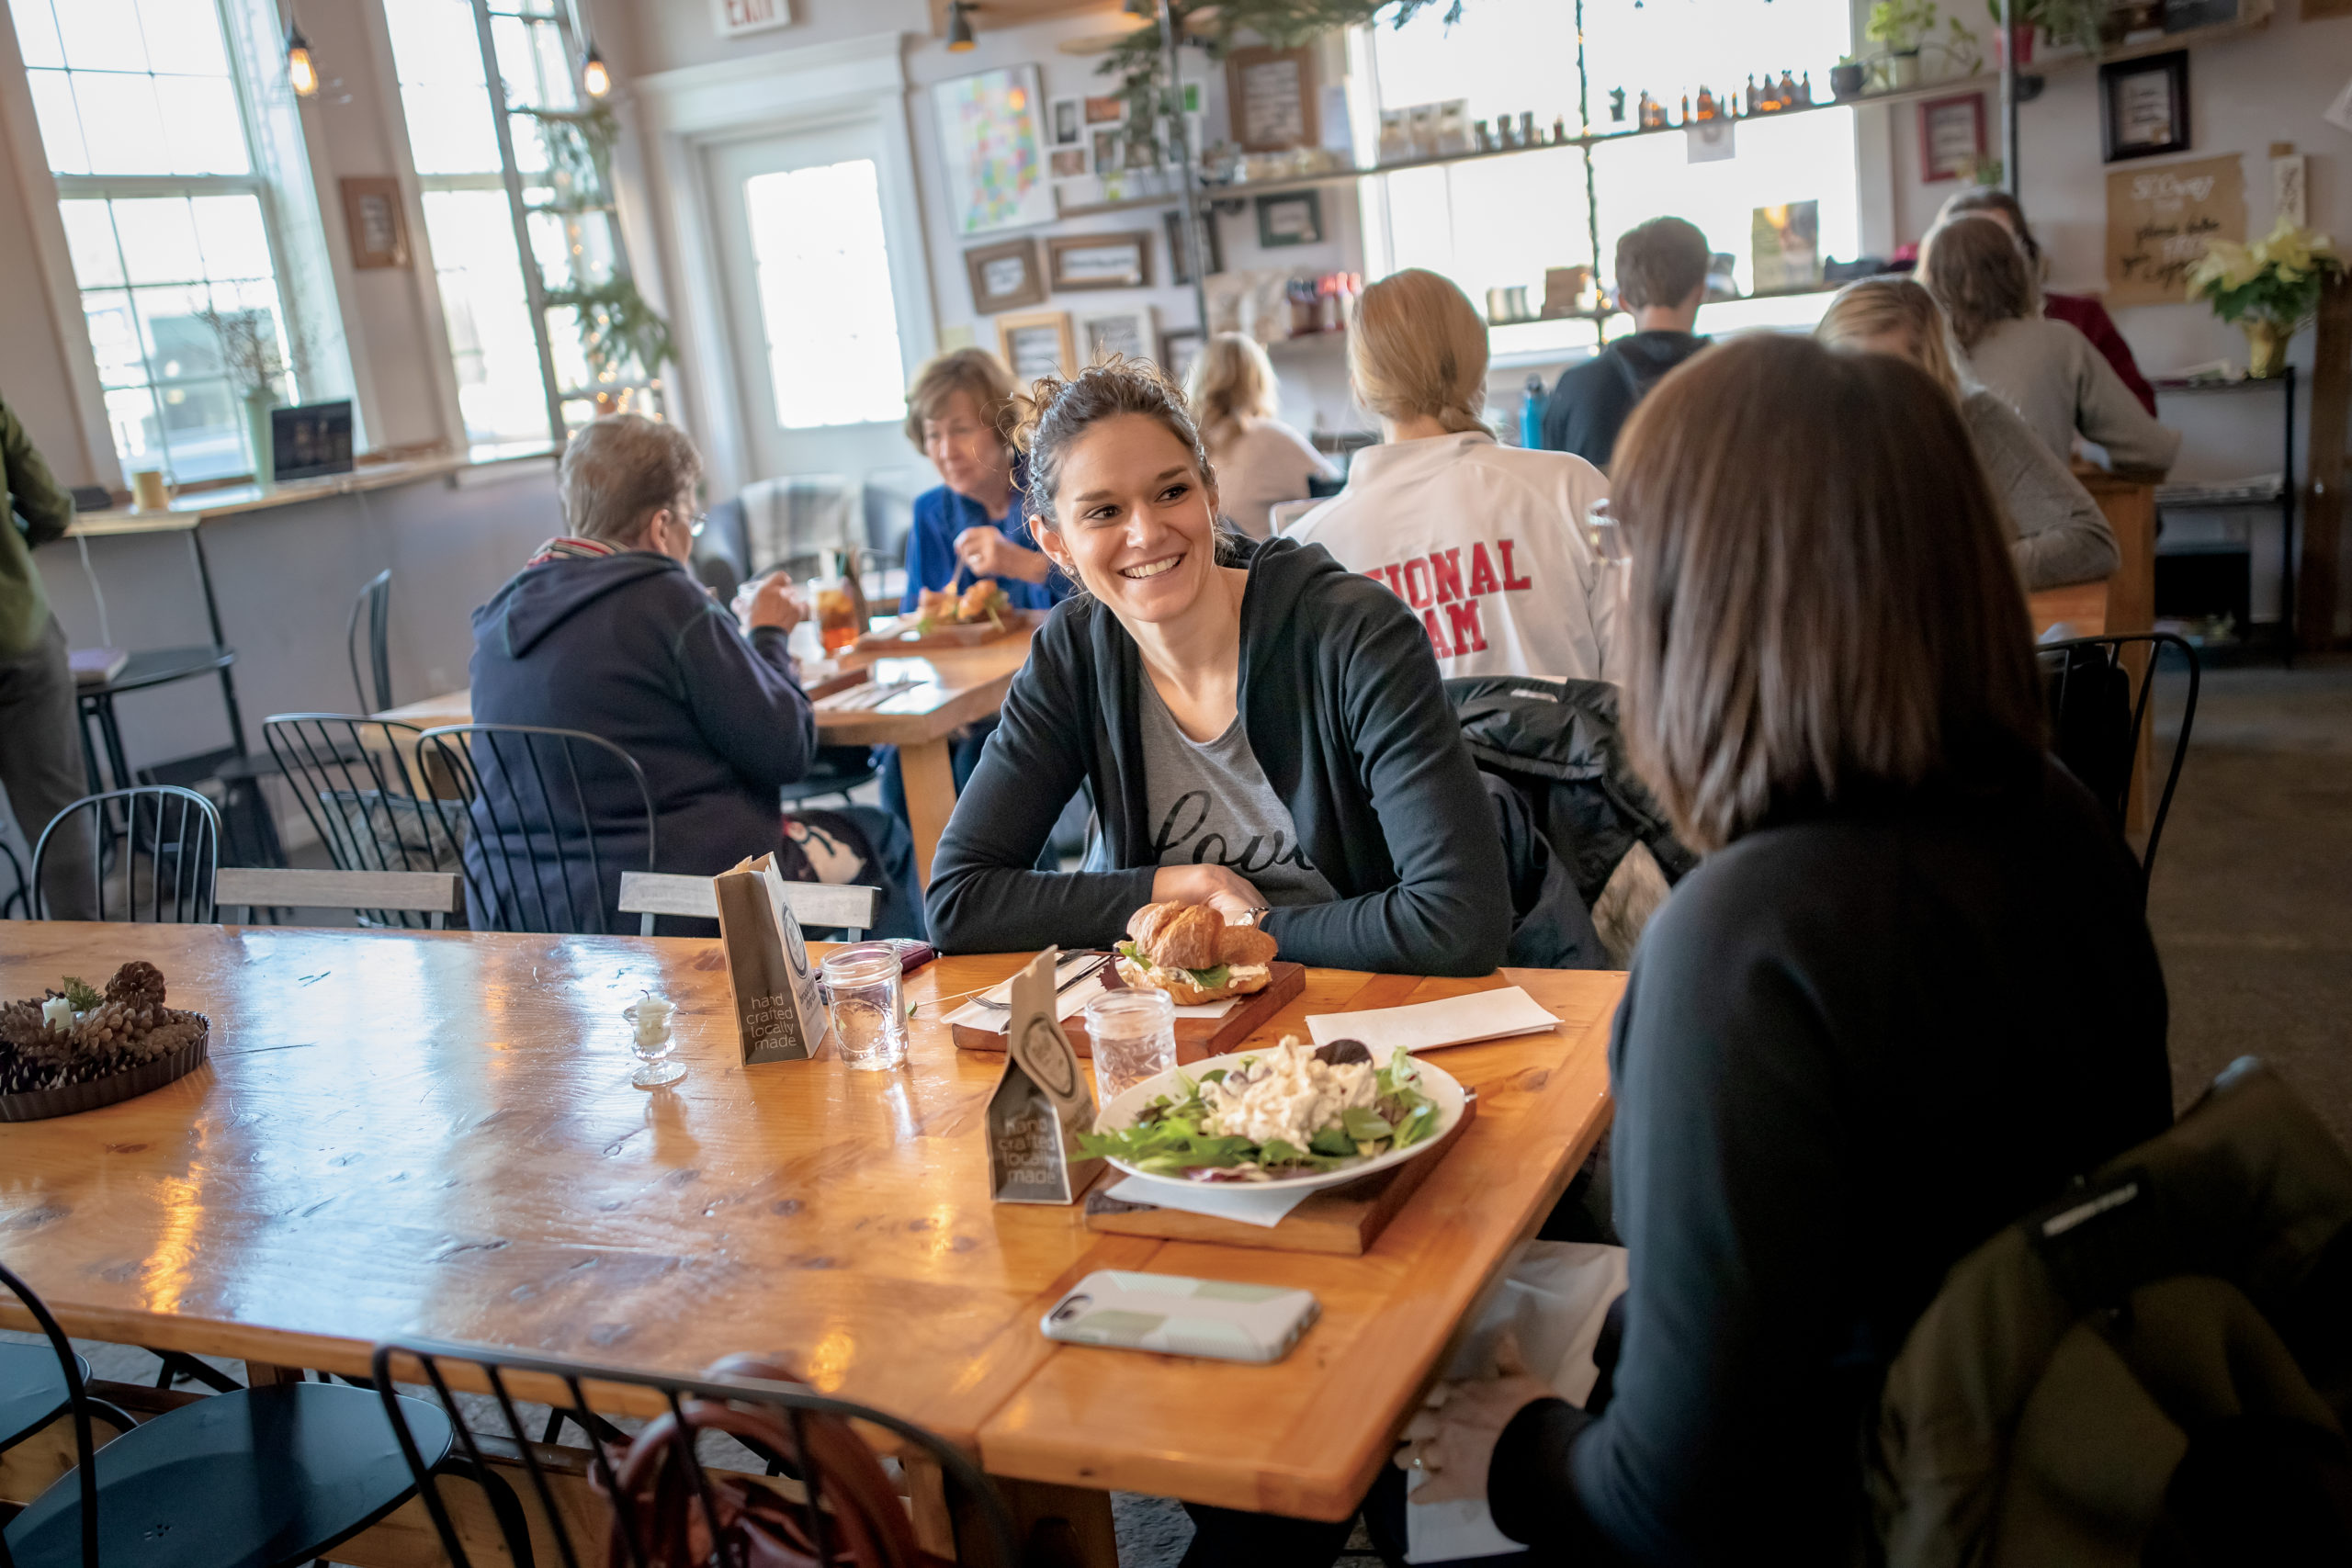 Customers talking and enjoying lunch at The Bridge Café in Upland, Indiana